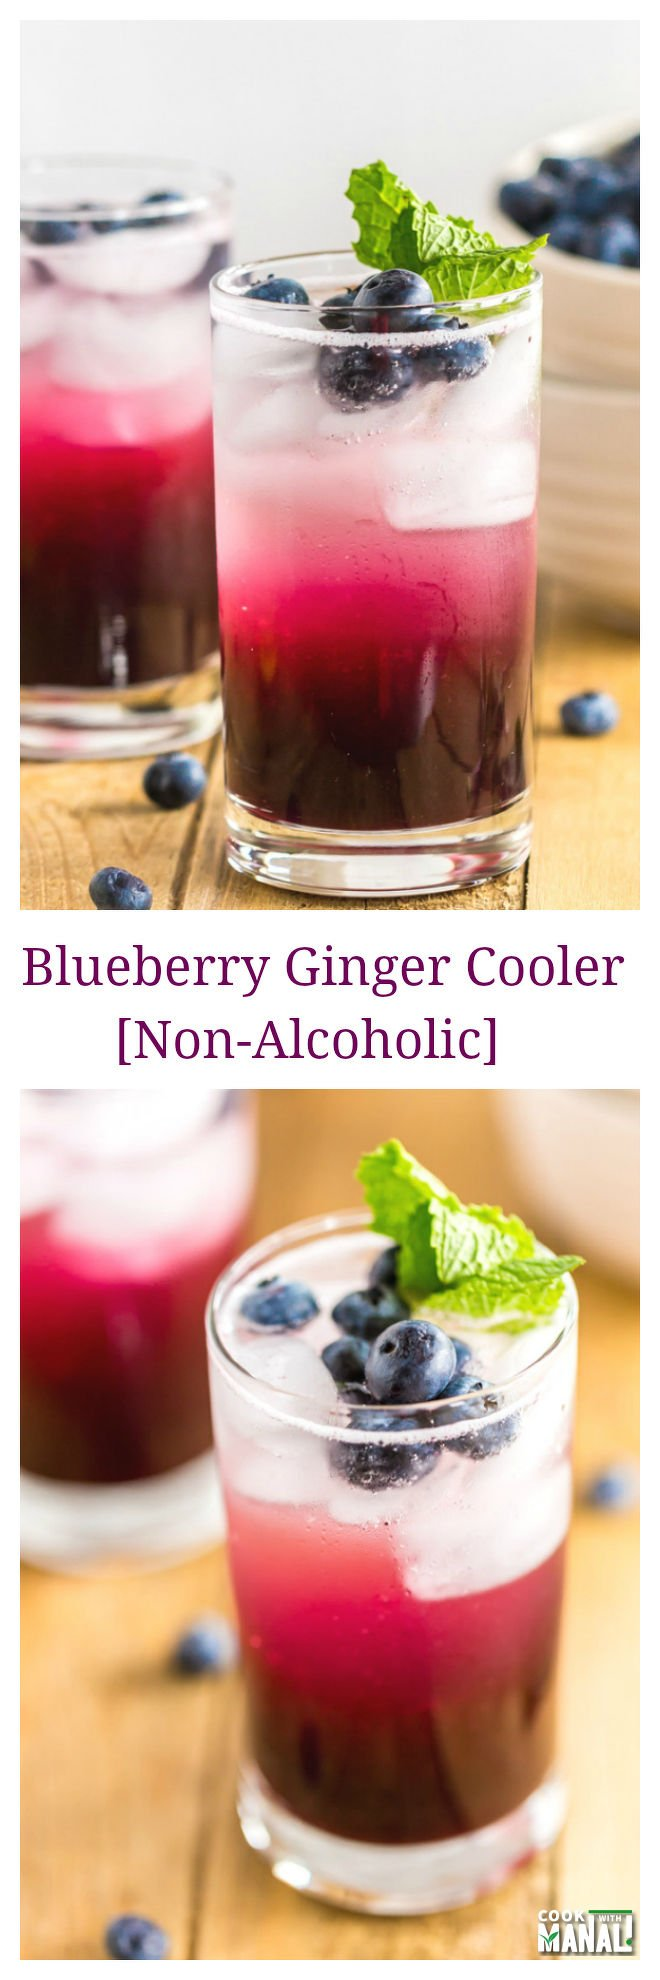 Blueberry Ginger Cooler Collage